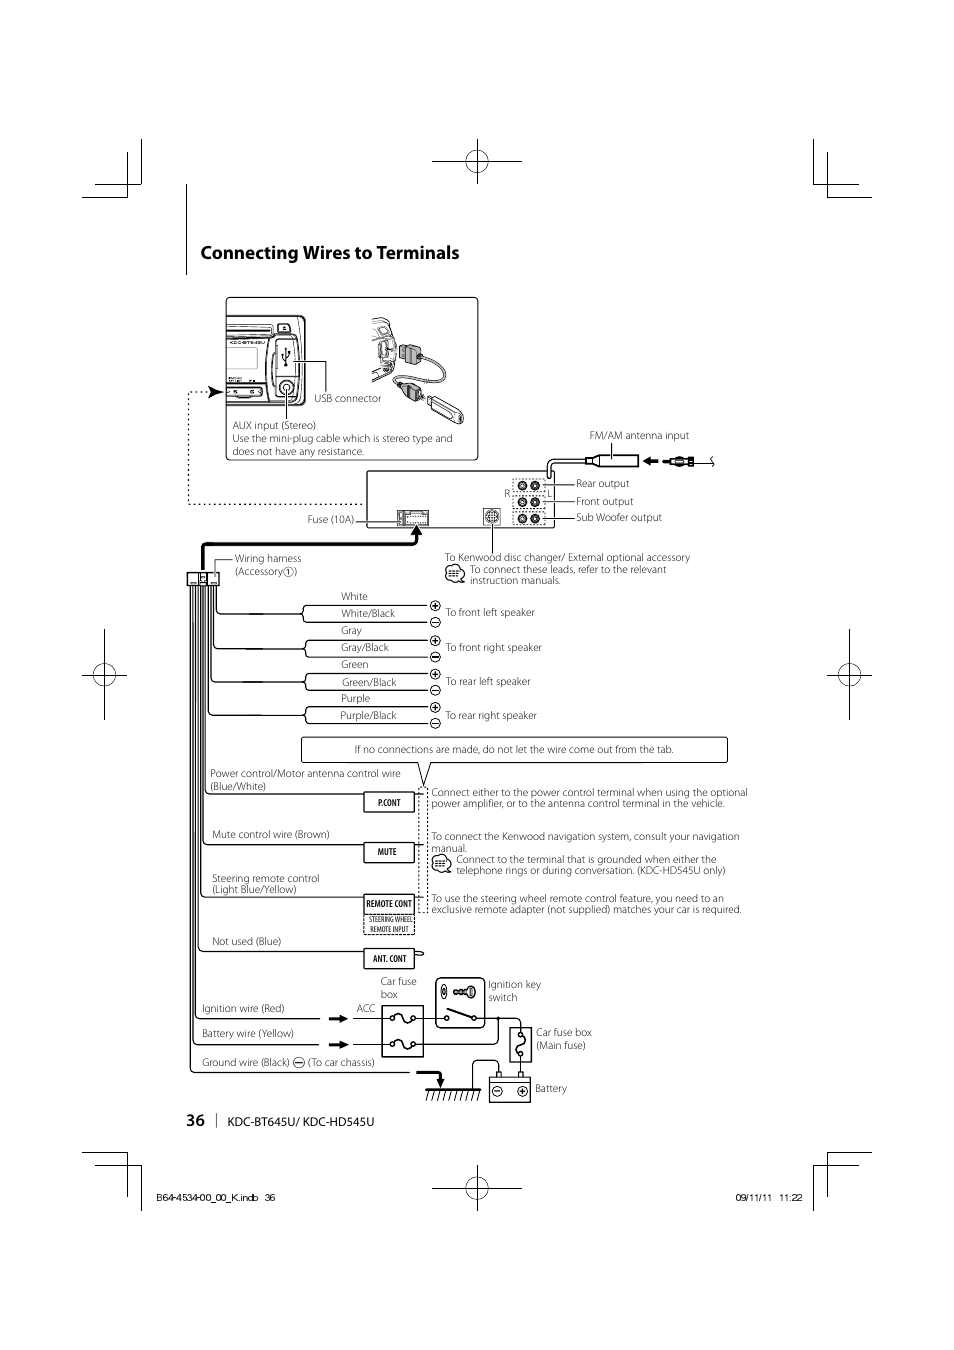 hight resolution of connecting wires to terminals kenwood kdc hd545u user manual schematic diagram connecting wires to terminals kenwood